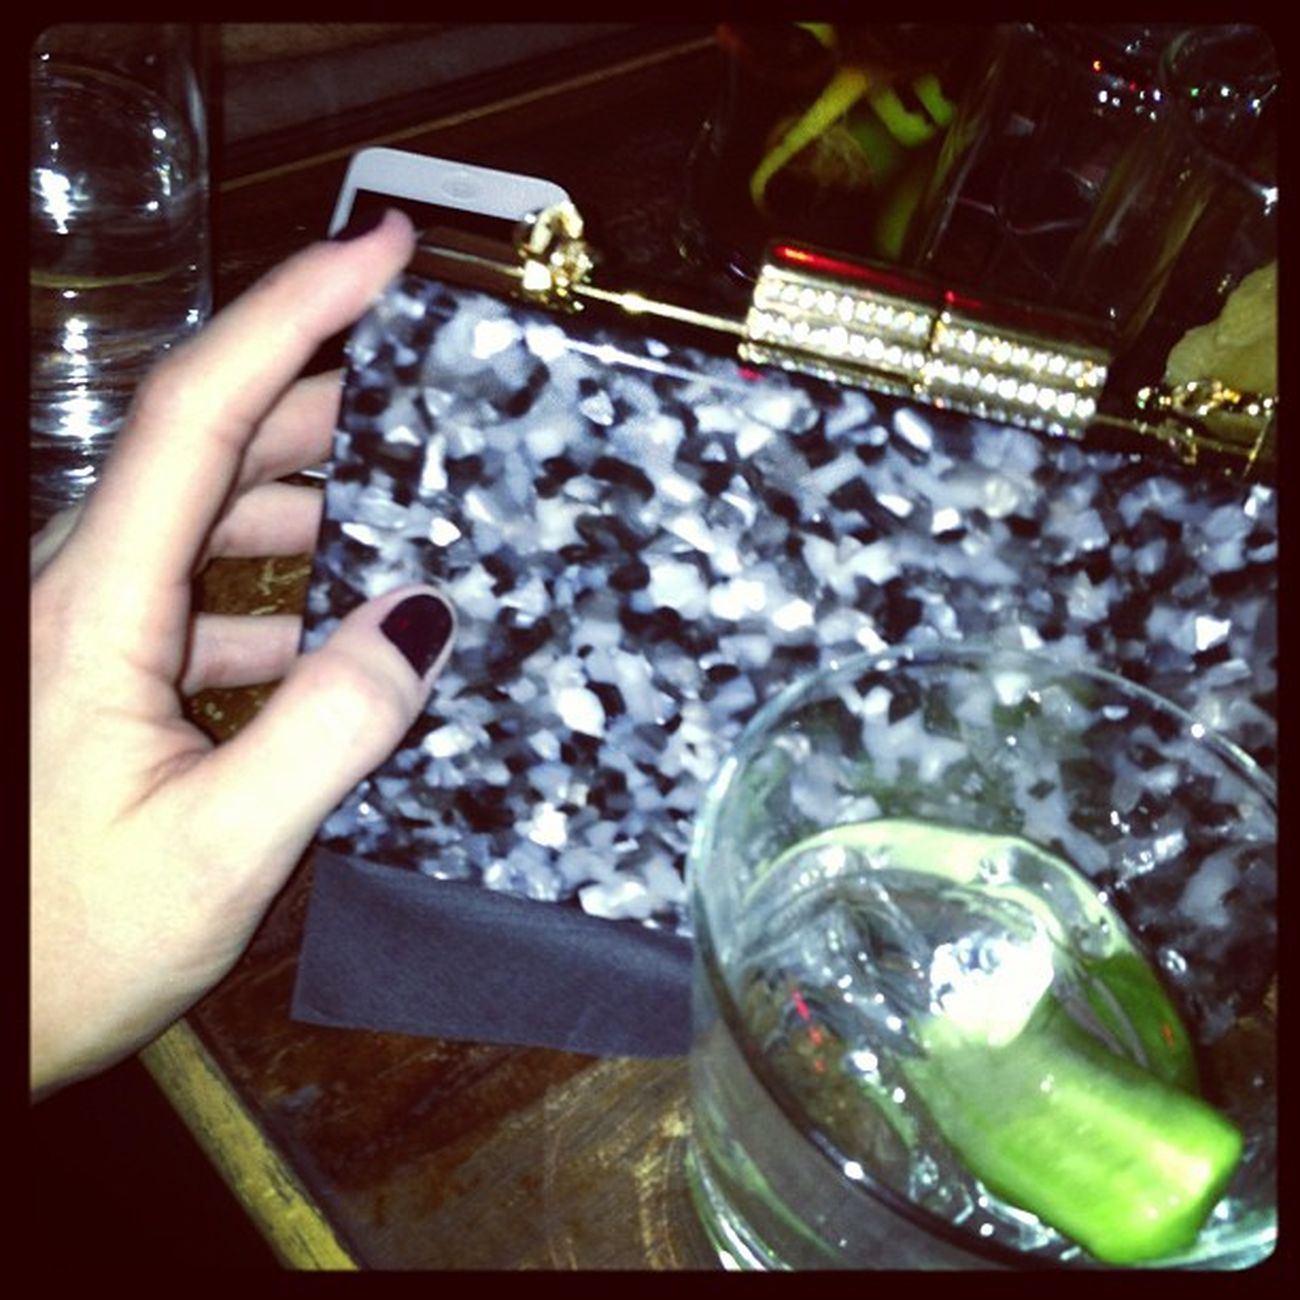 Night out with Gazellaki new minaudiere from new season F/W13 !! Teaaser people!! Teaser Perspex Plexiglass Lucite bag clutch minaudiere handmade industrialdesign design athens moscow russia thailand milan miami paris uraniagazelli marble shell black gold